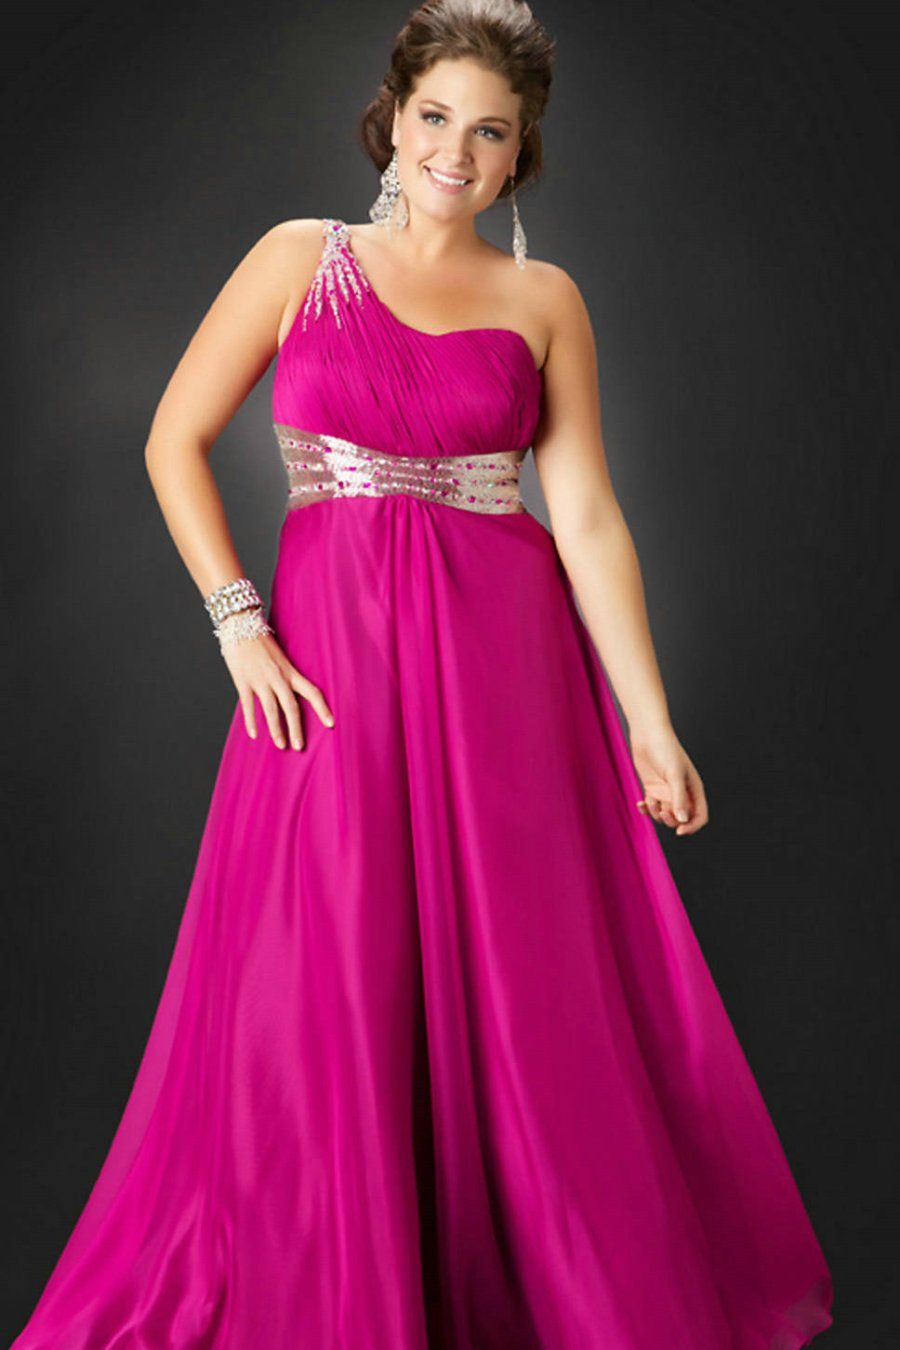 Elegant One Shoulder Chiffon Long Plus Size Formal Dresses | curvas ...